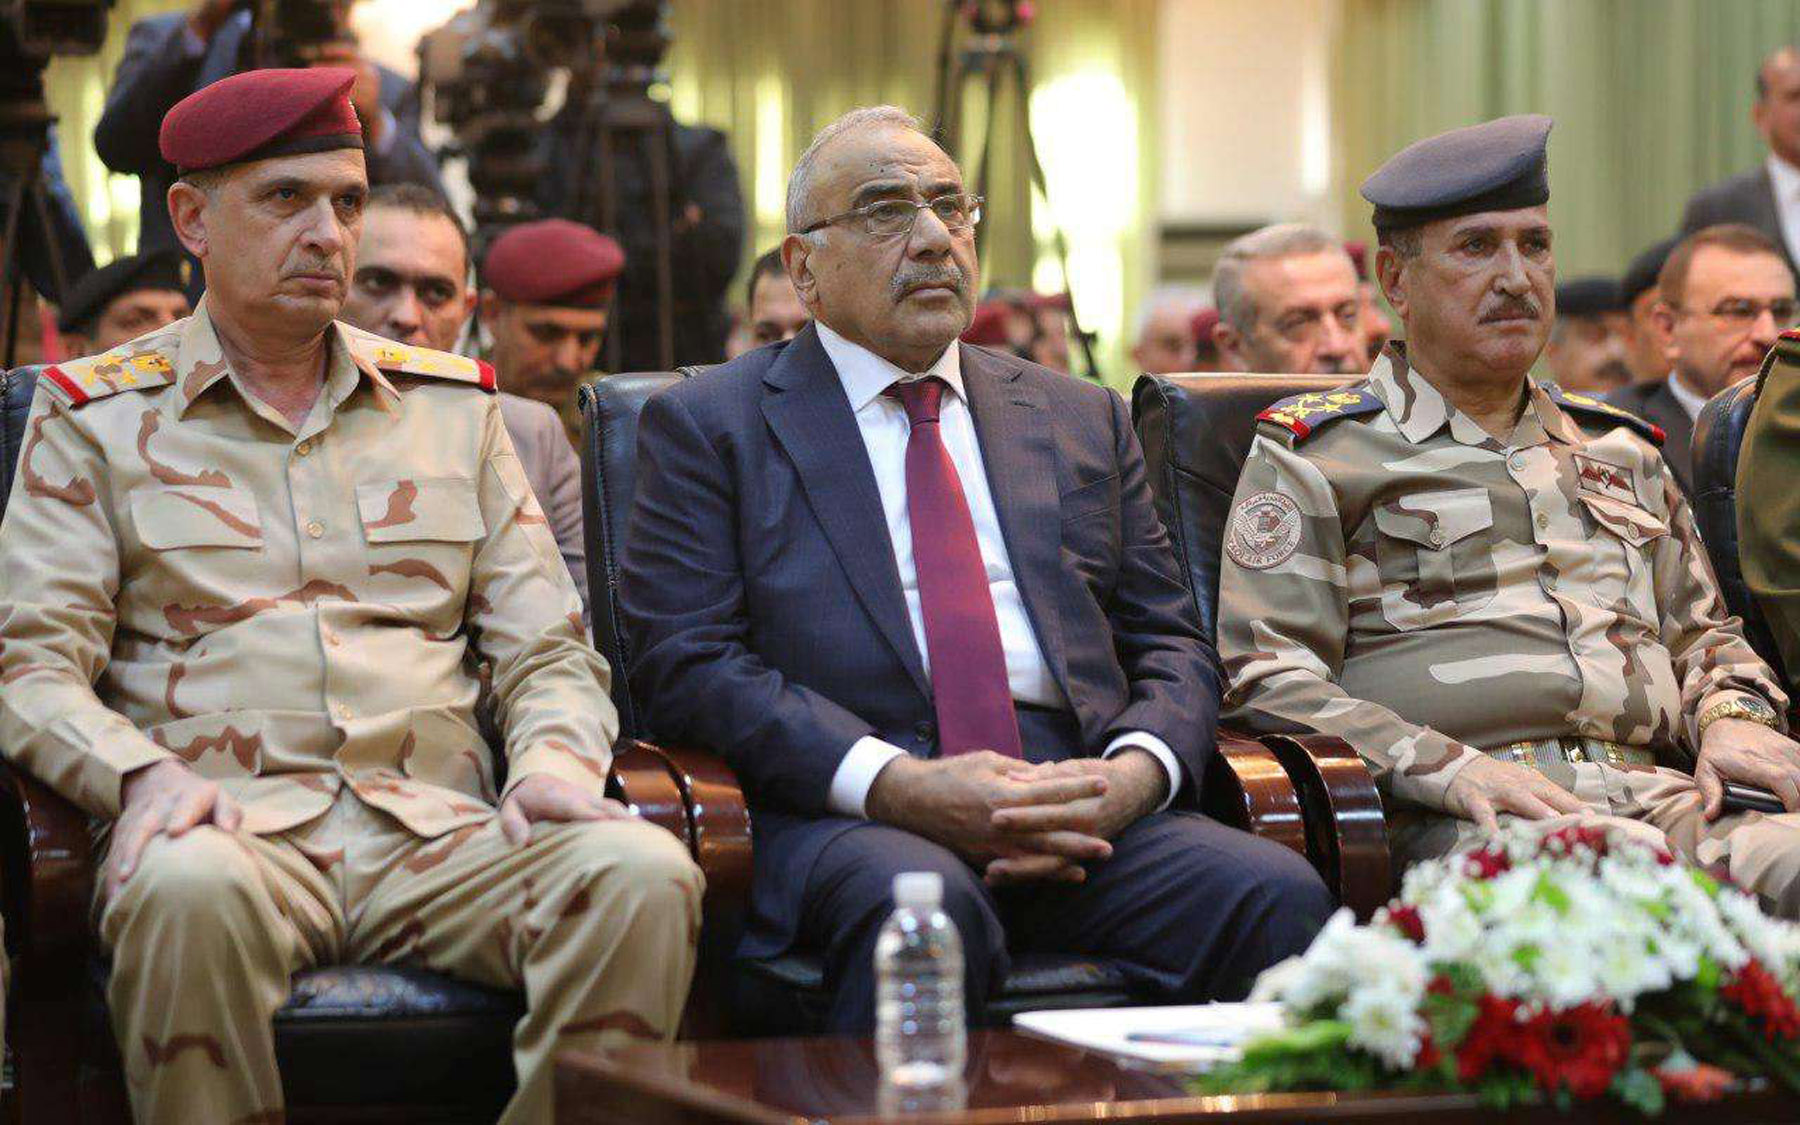 Iraqi Prime Minister Adel Abdul-Mahdi (C) attends a ceremony on the first anniversary of defeating ISIS in Baghdad,  December 10. (Reuters)